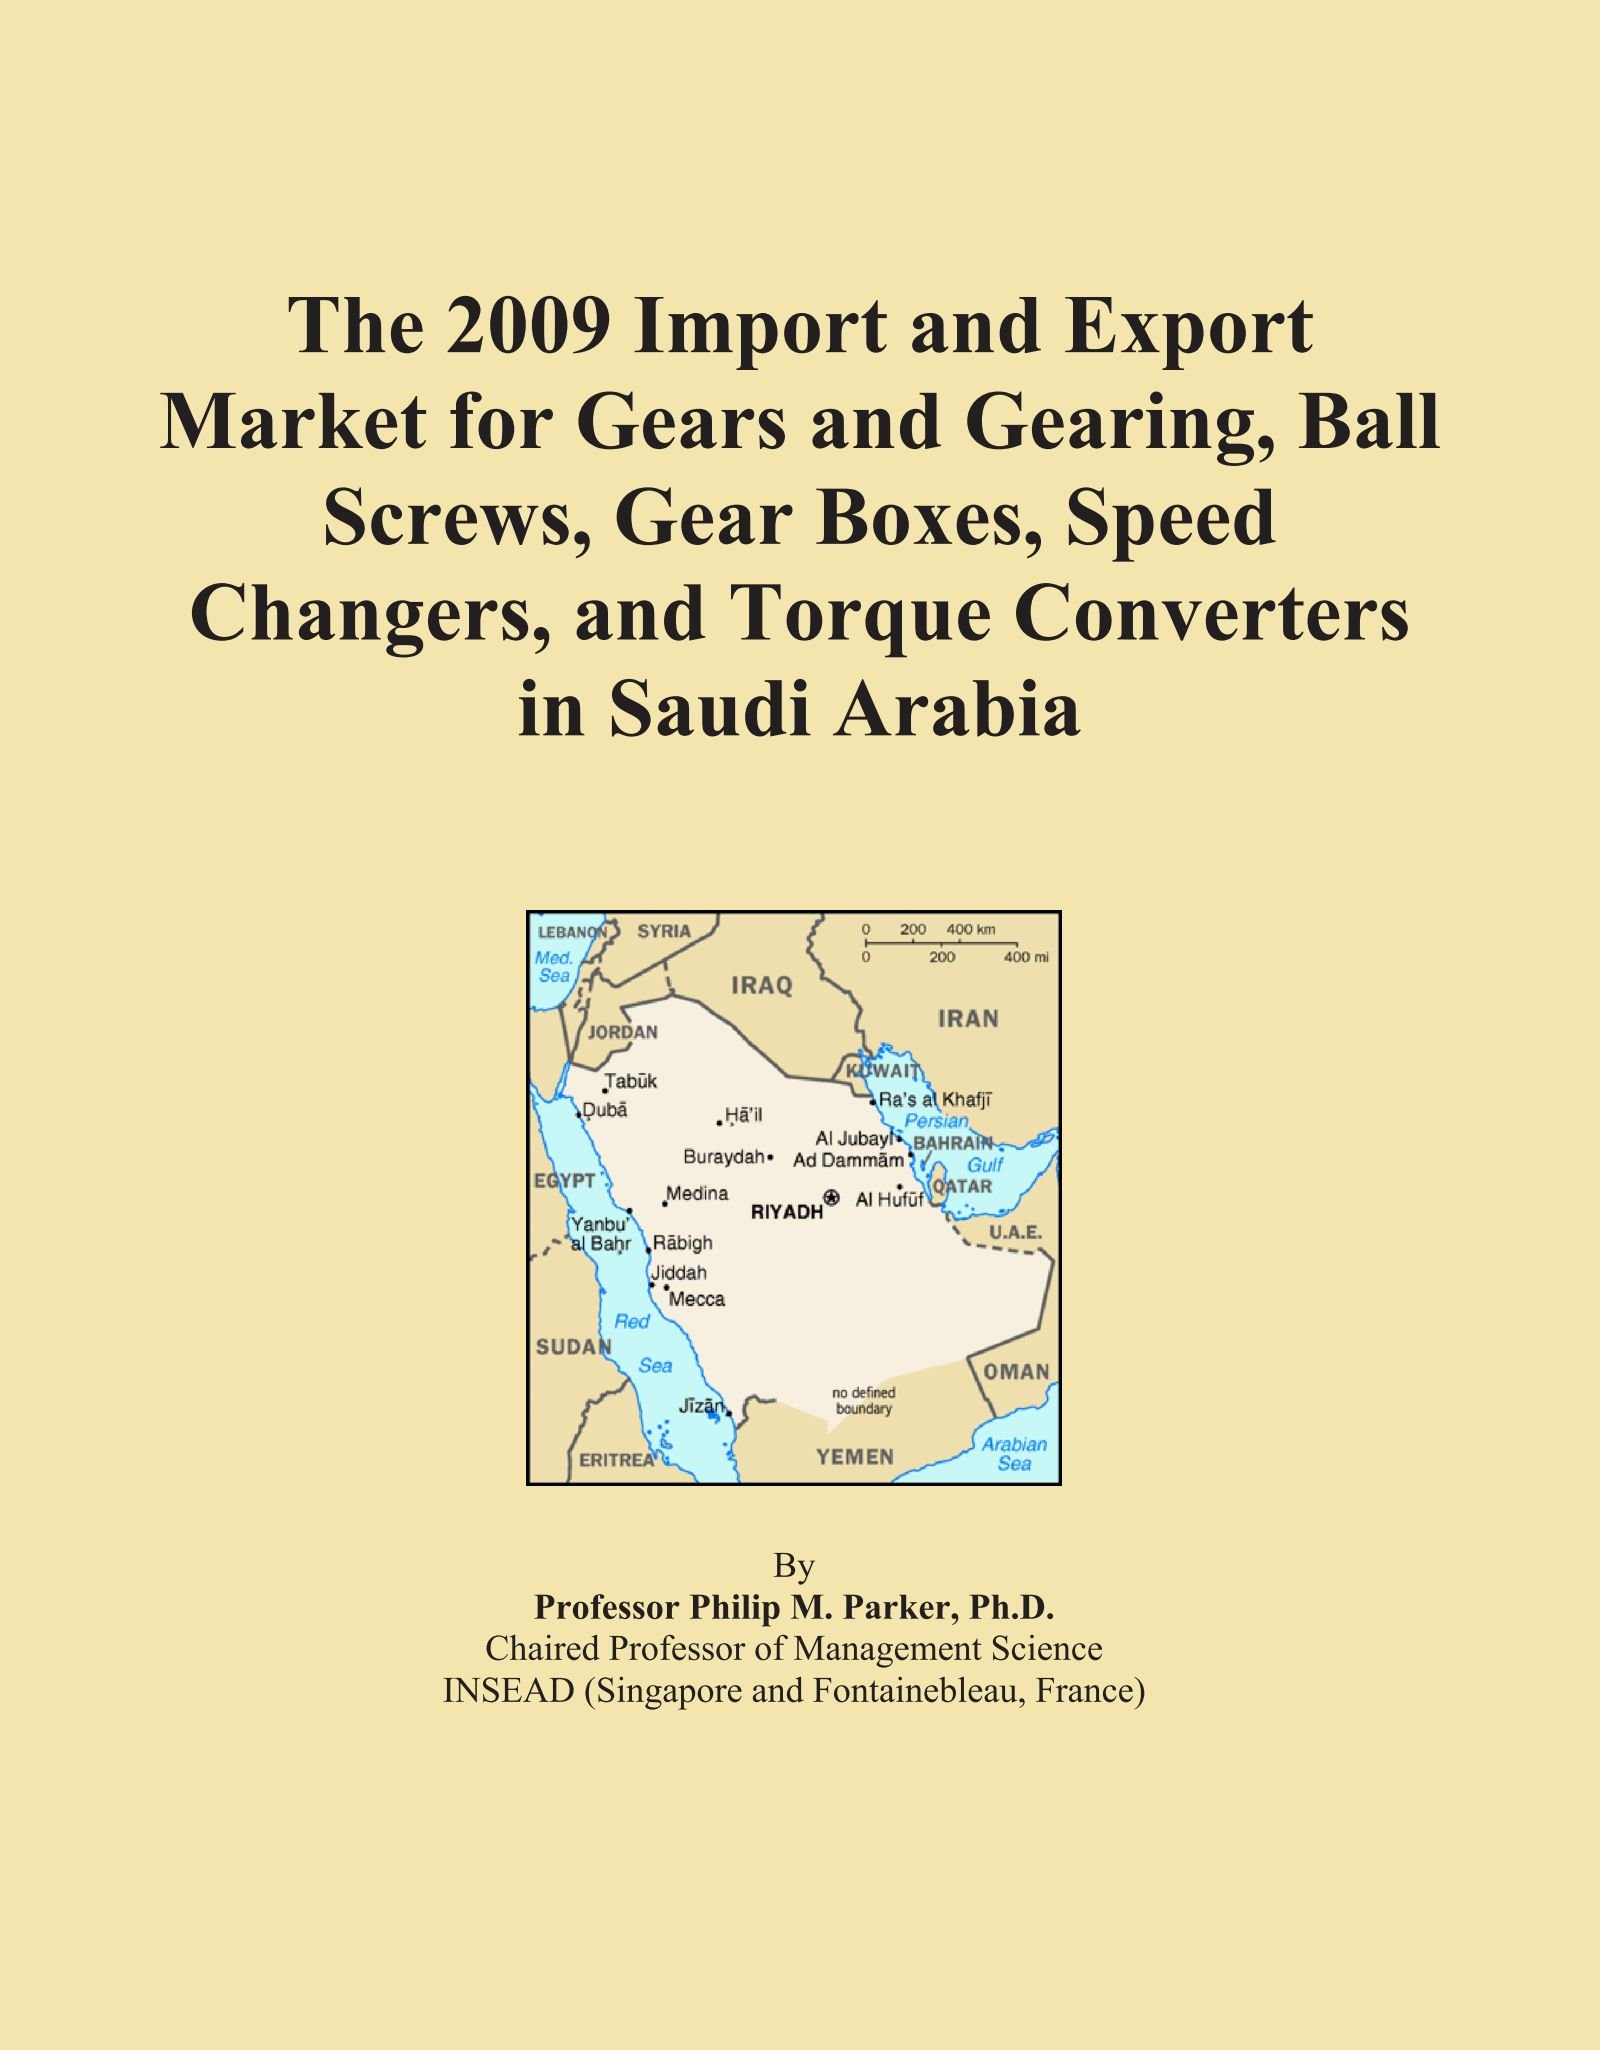 The 2009 Import and Export Market for Gears and Gearing, Ball Screws, Gear Boxes, Speed Changers, and Torque Converters in Saudi Arabia ebook